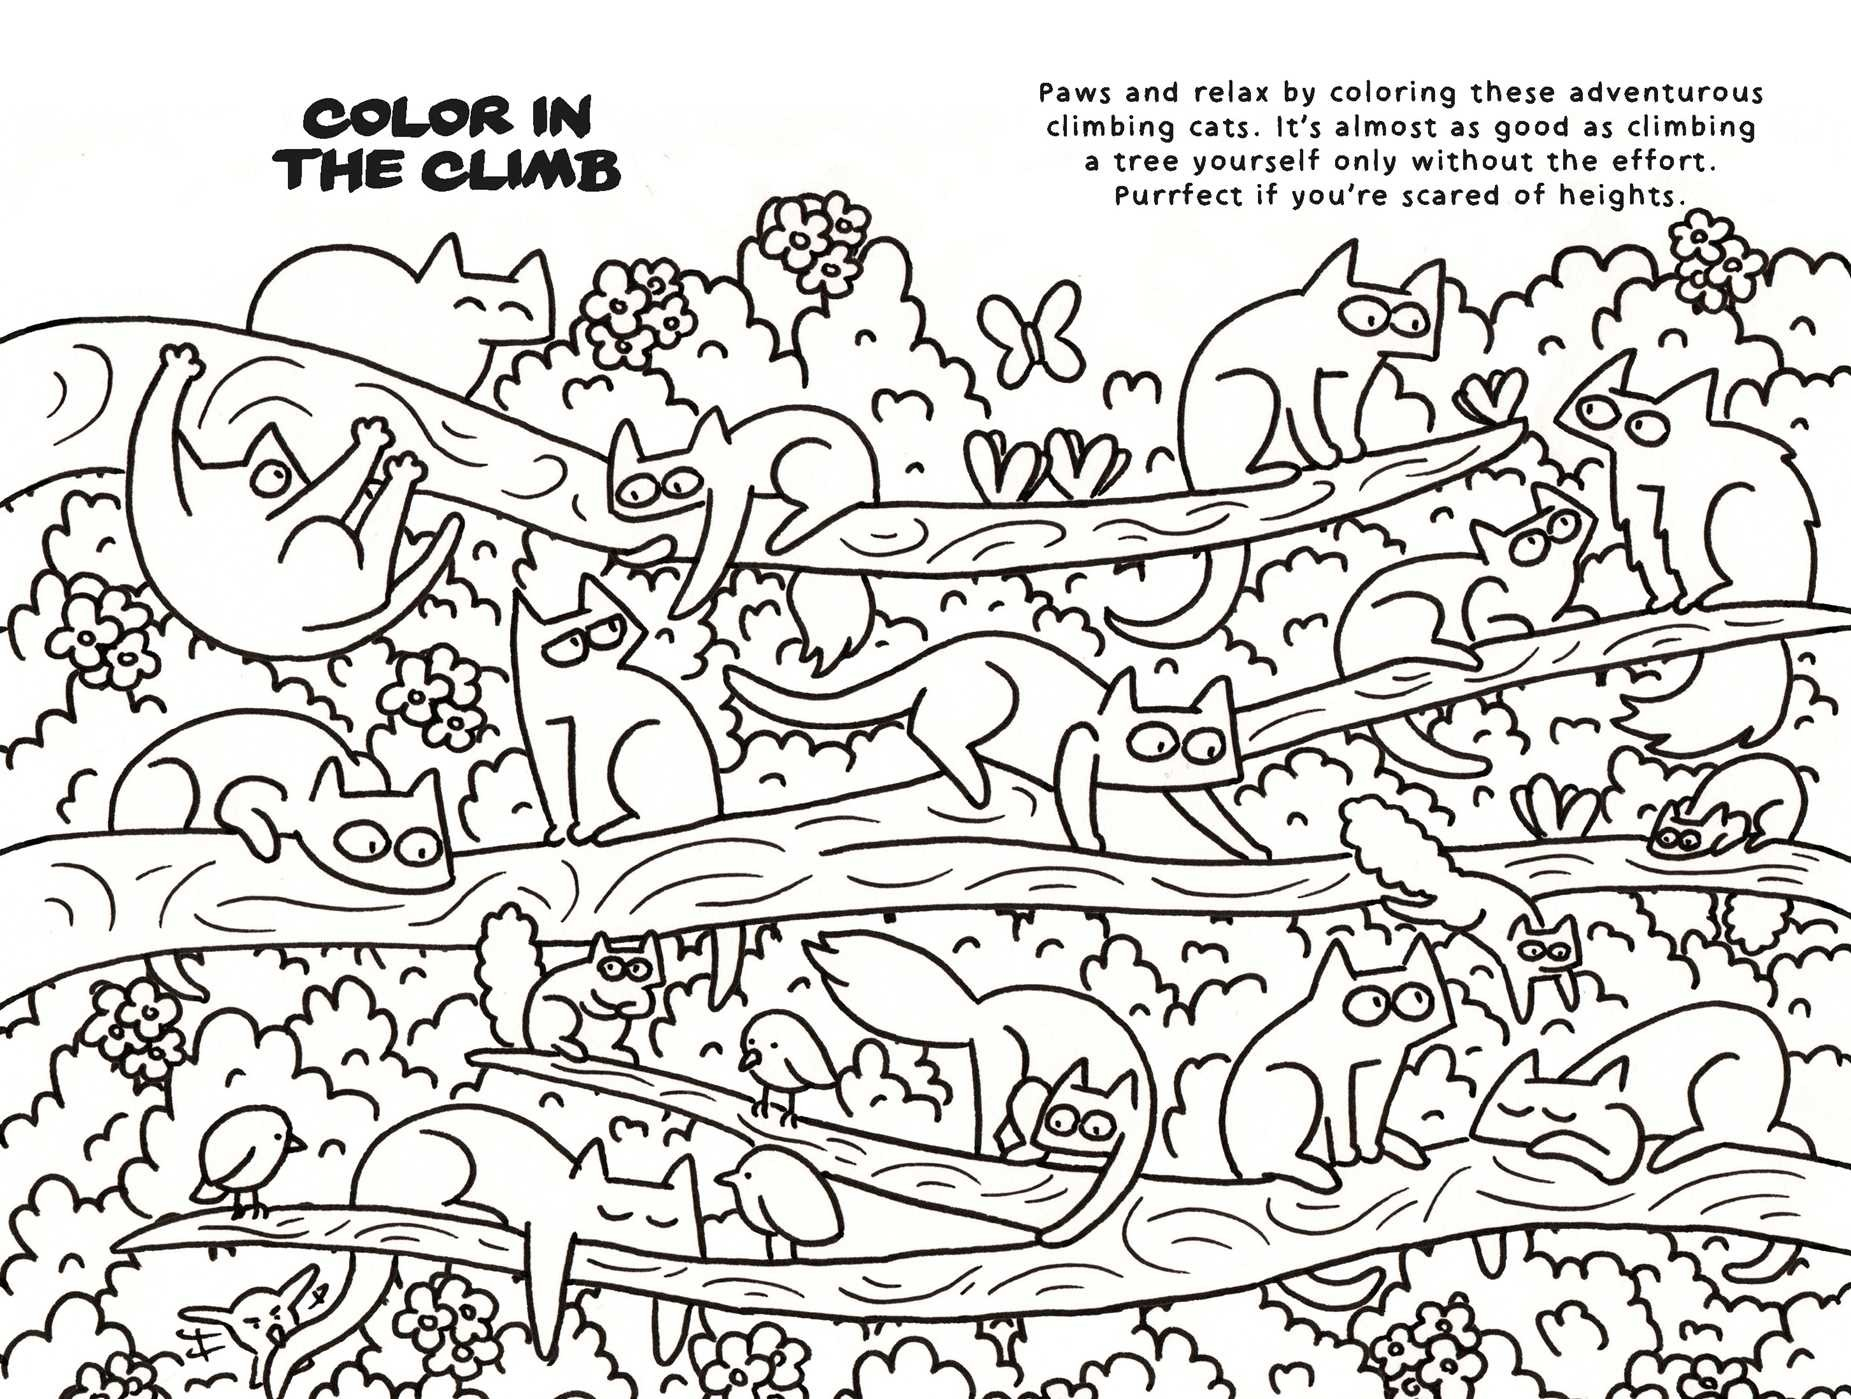 Mindfulness And Coloring For Cats 9781911026150in03